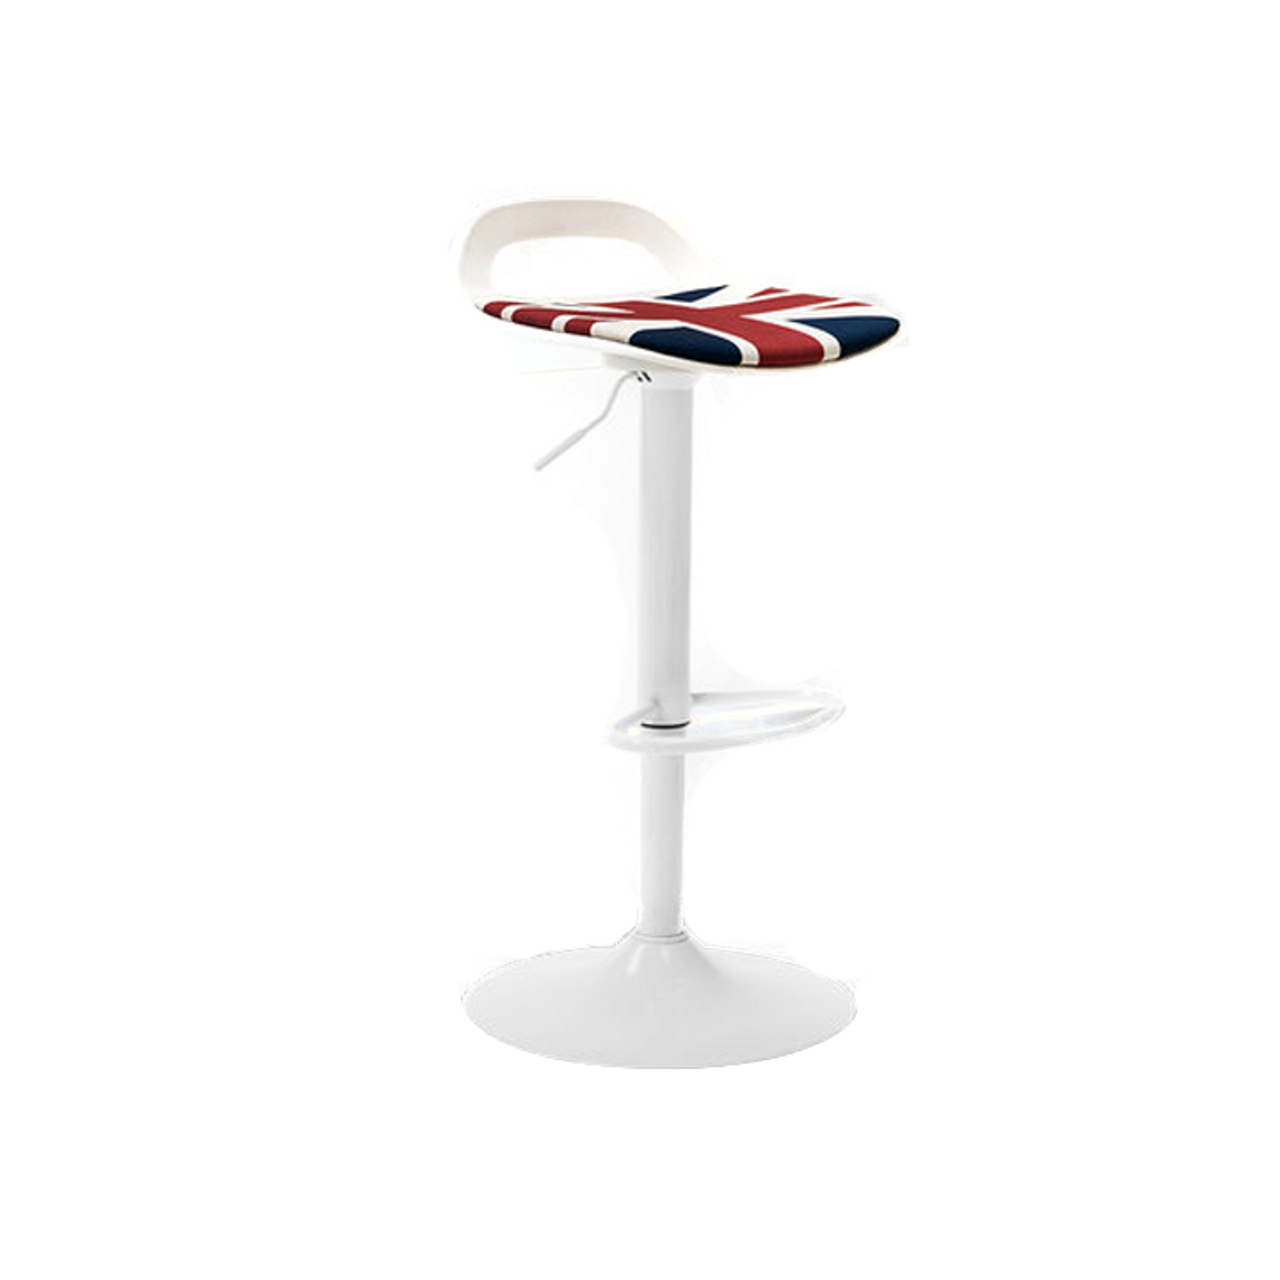 Surprising Short Hydraulic Lift Bar Stools White Camellatalisay Diy Chair Ideas Camellatalisaycom